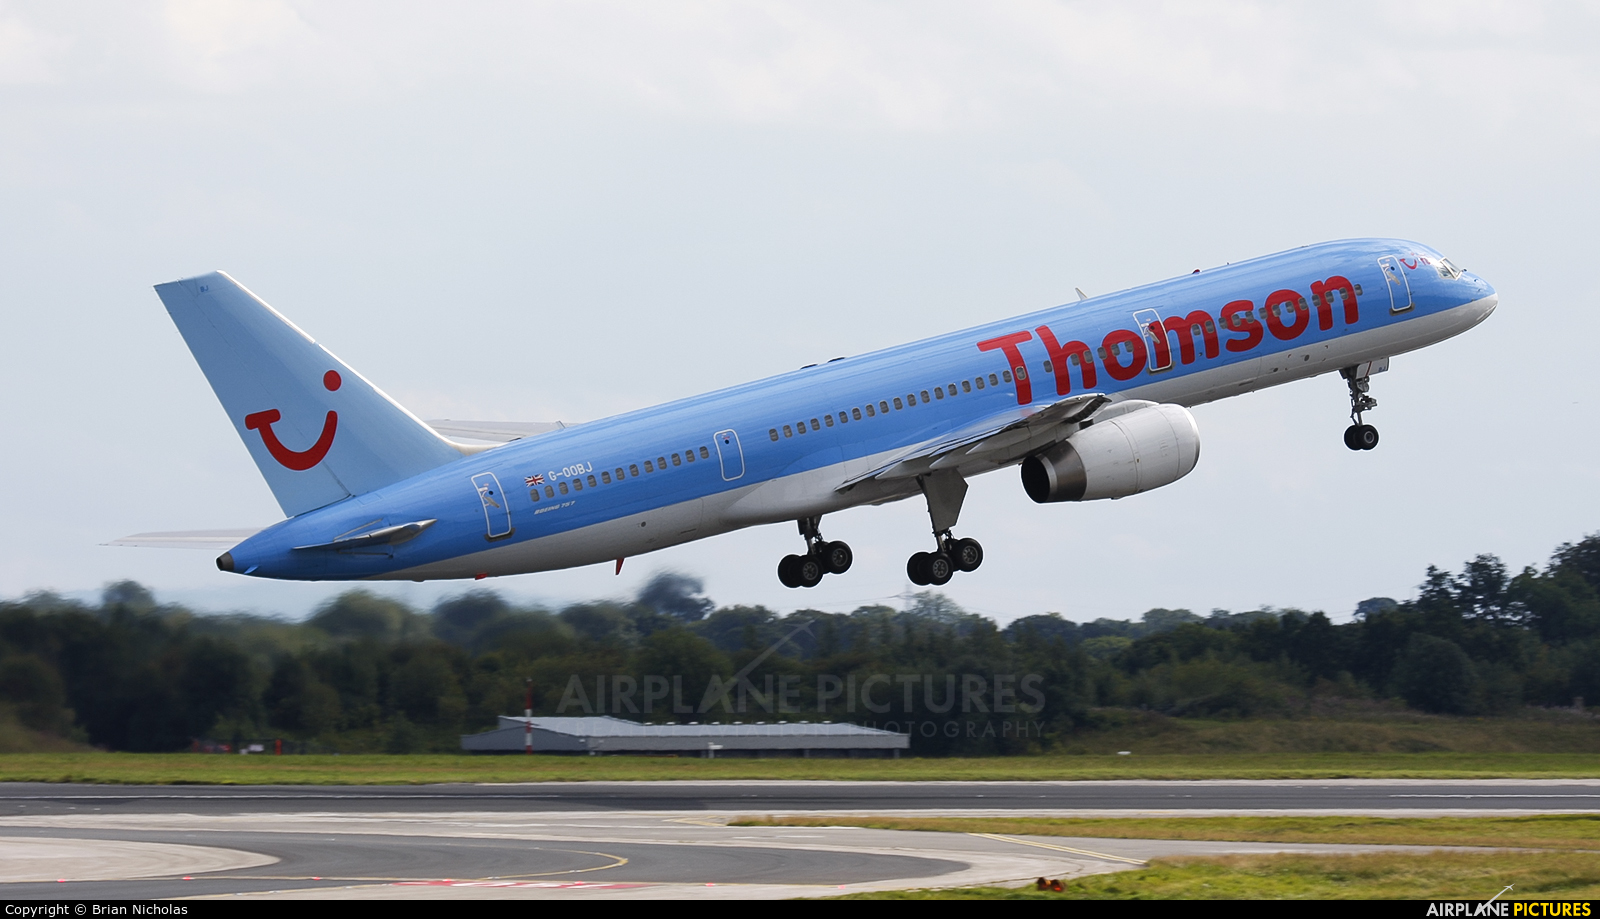 Thomson/Thomsonfly G-OOBJ aircraft at Manchester